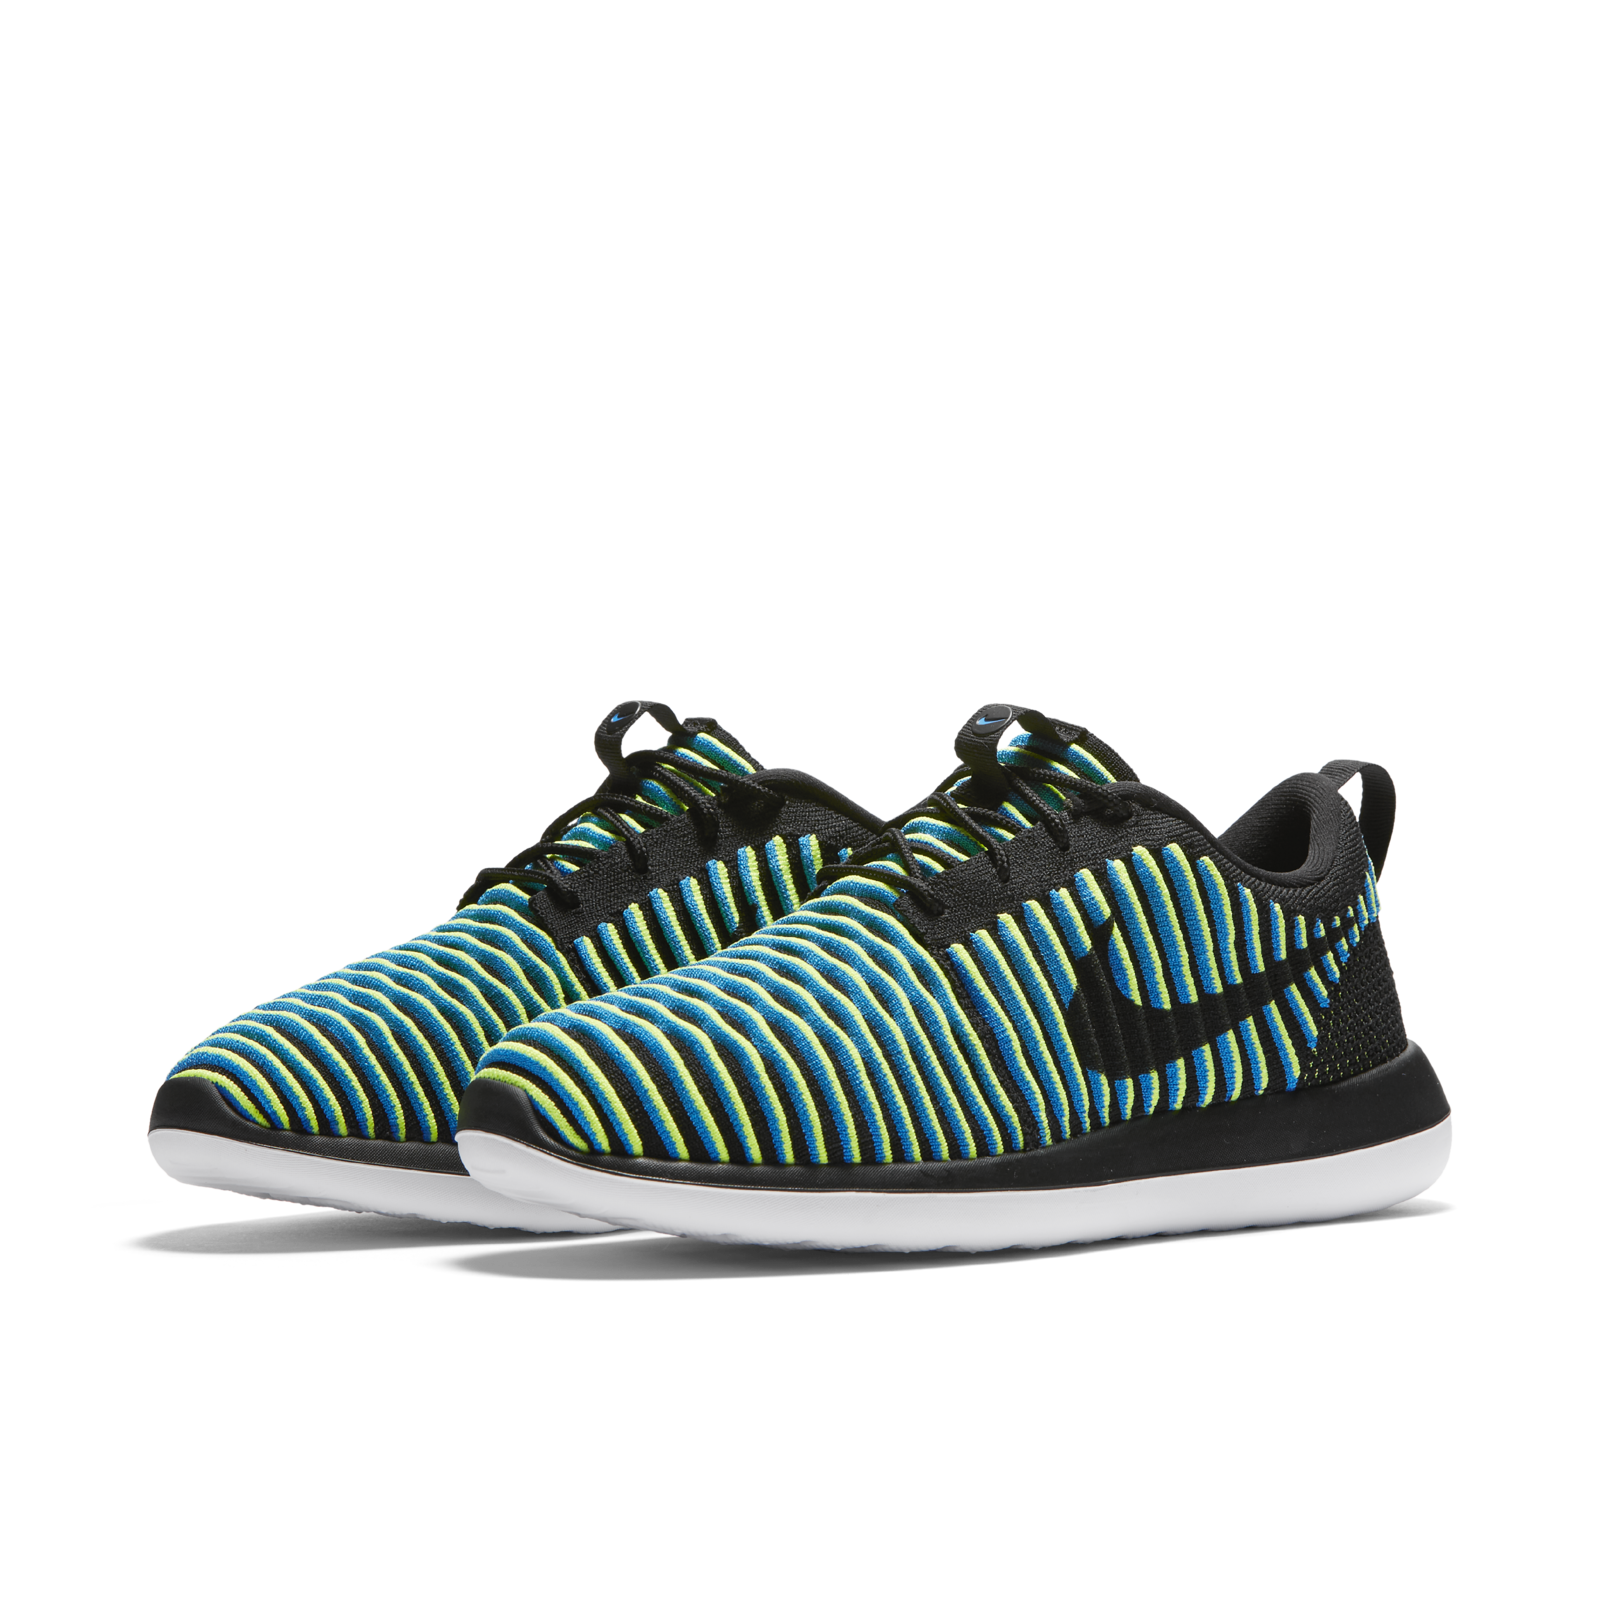 3806c8d84480a Nike Roshe Hyp Black Nike Roshe One Hyperfuse Black Worldwide